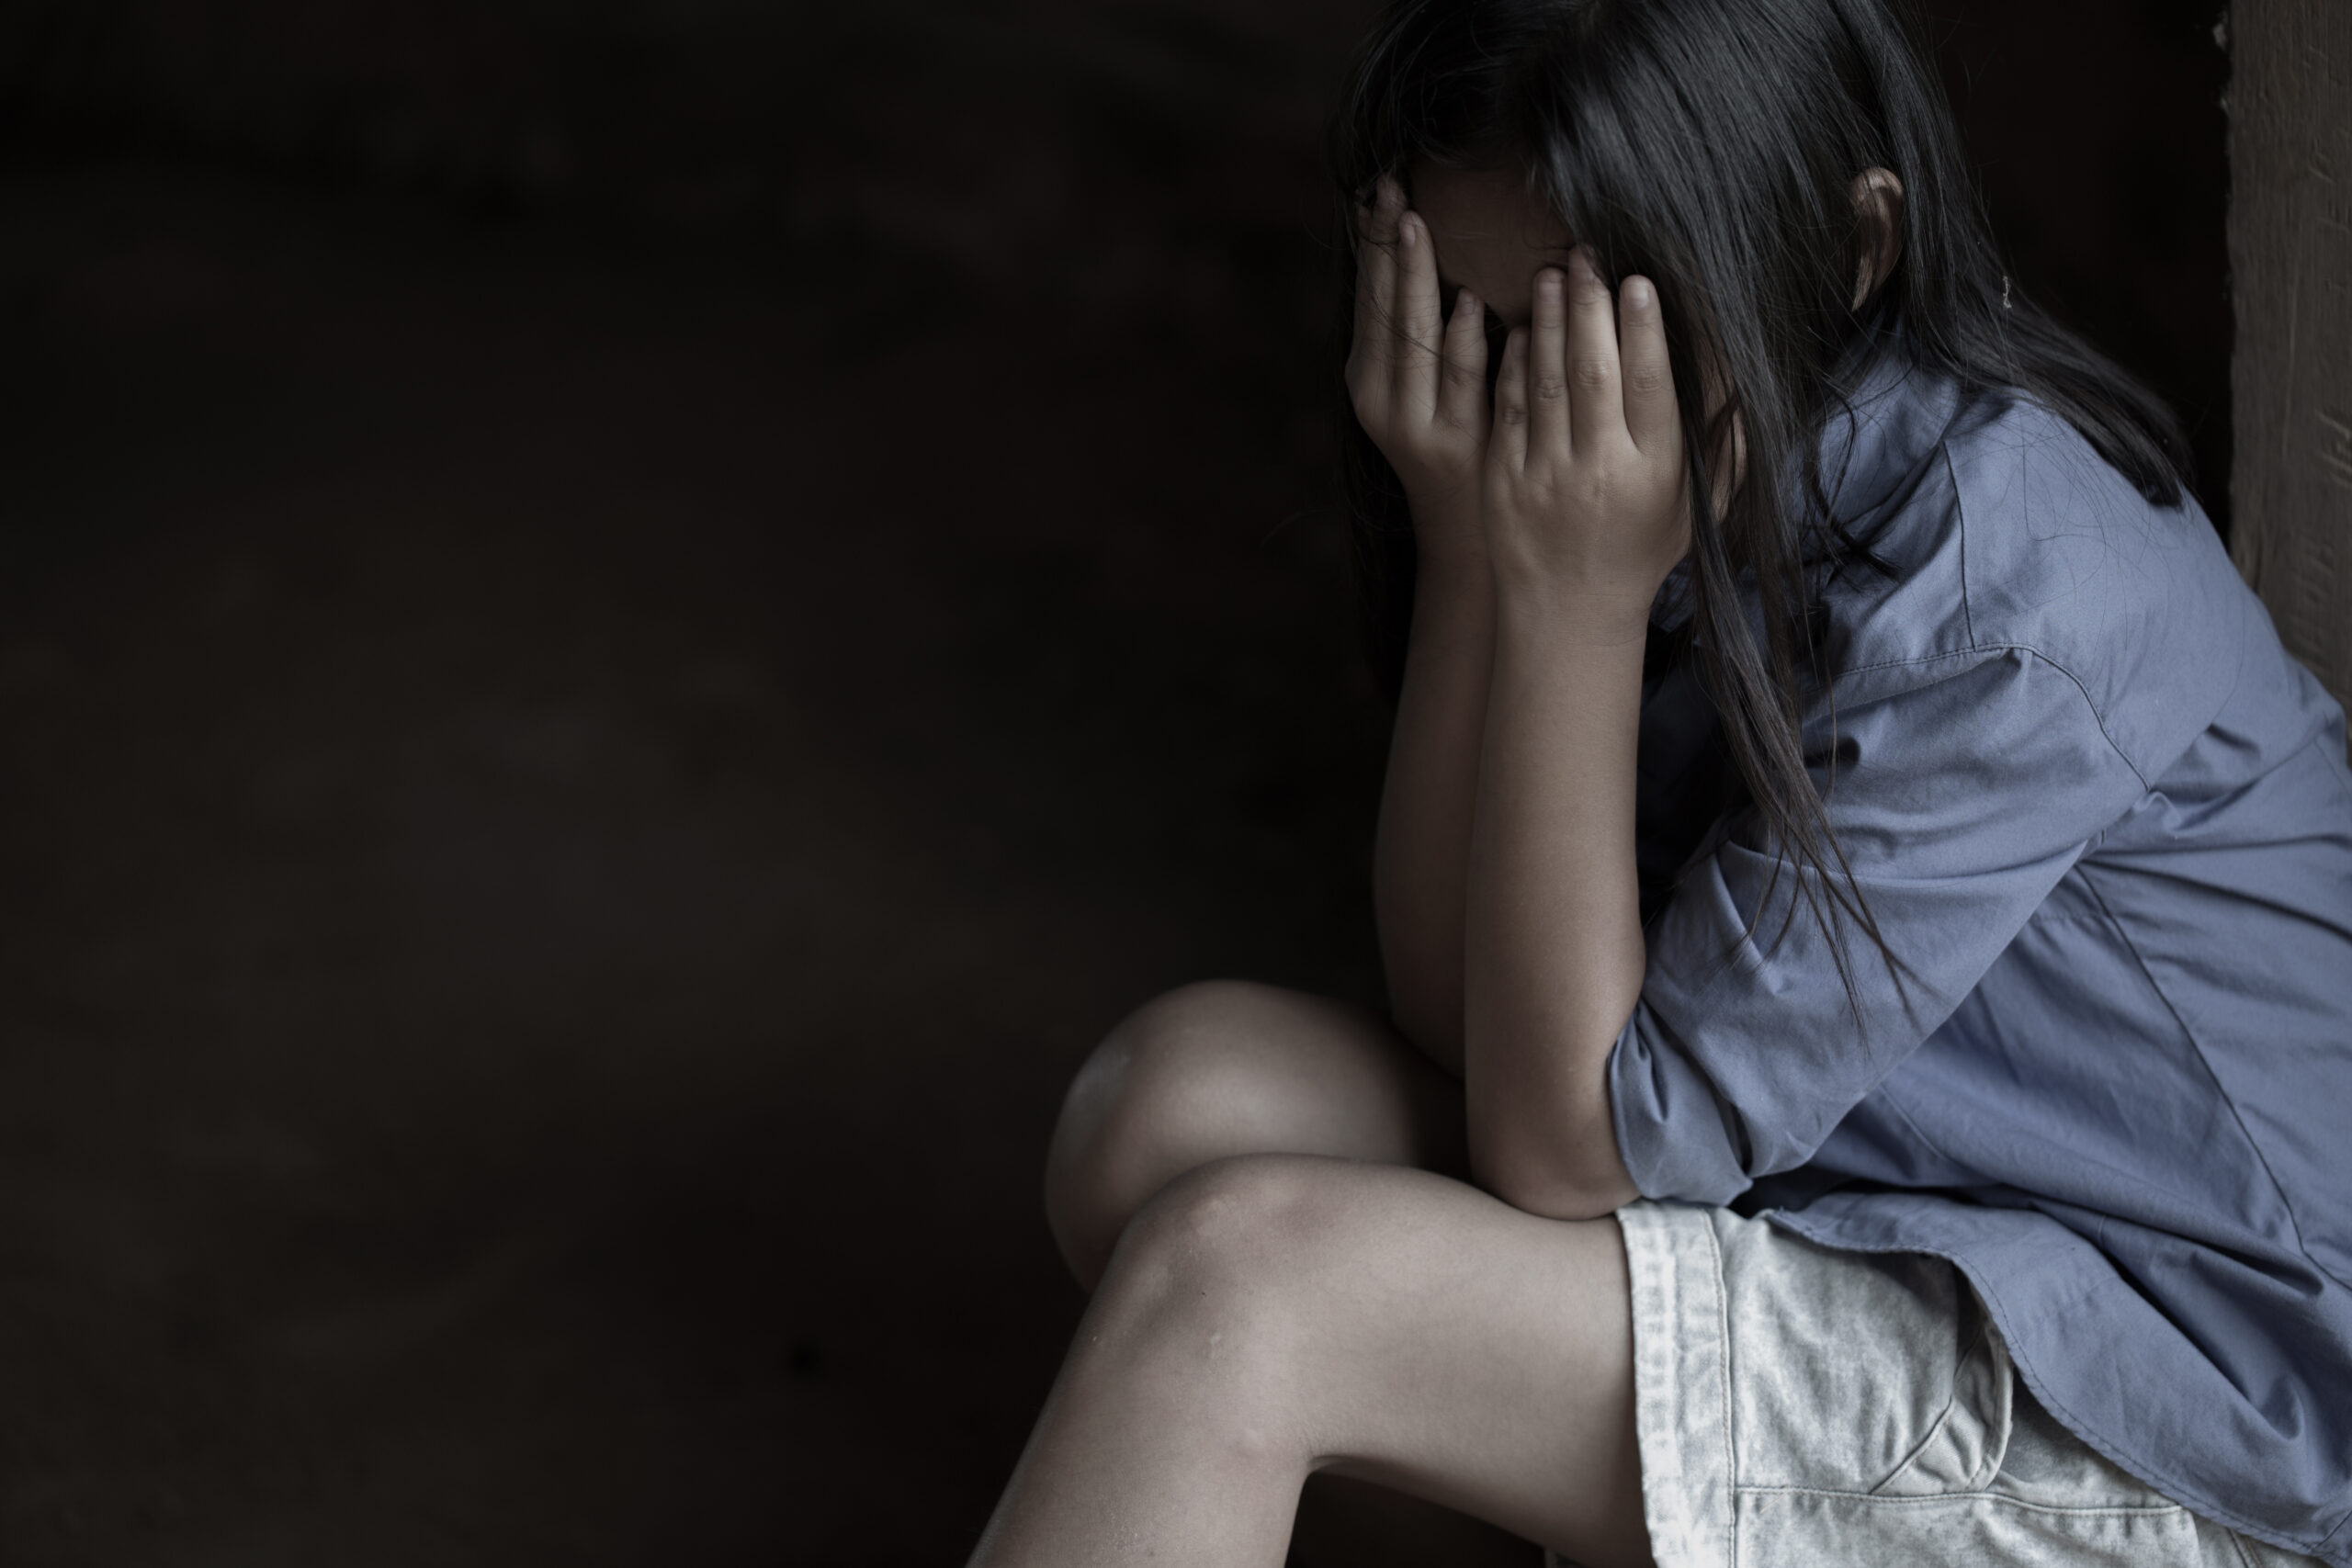 Teenage pregnancy – which is often child rape – should enrage us